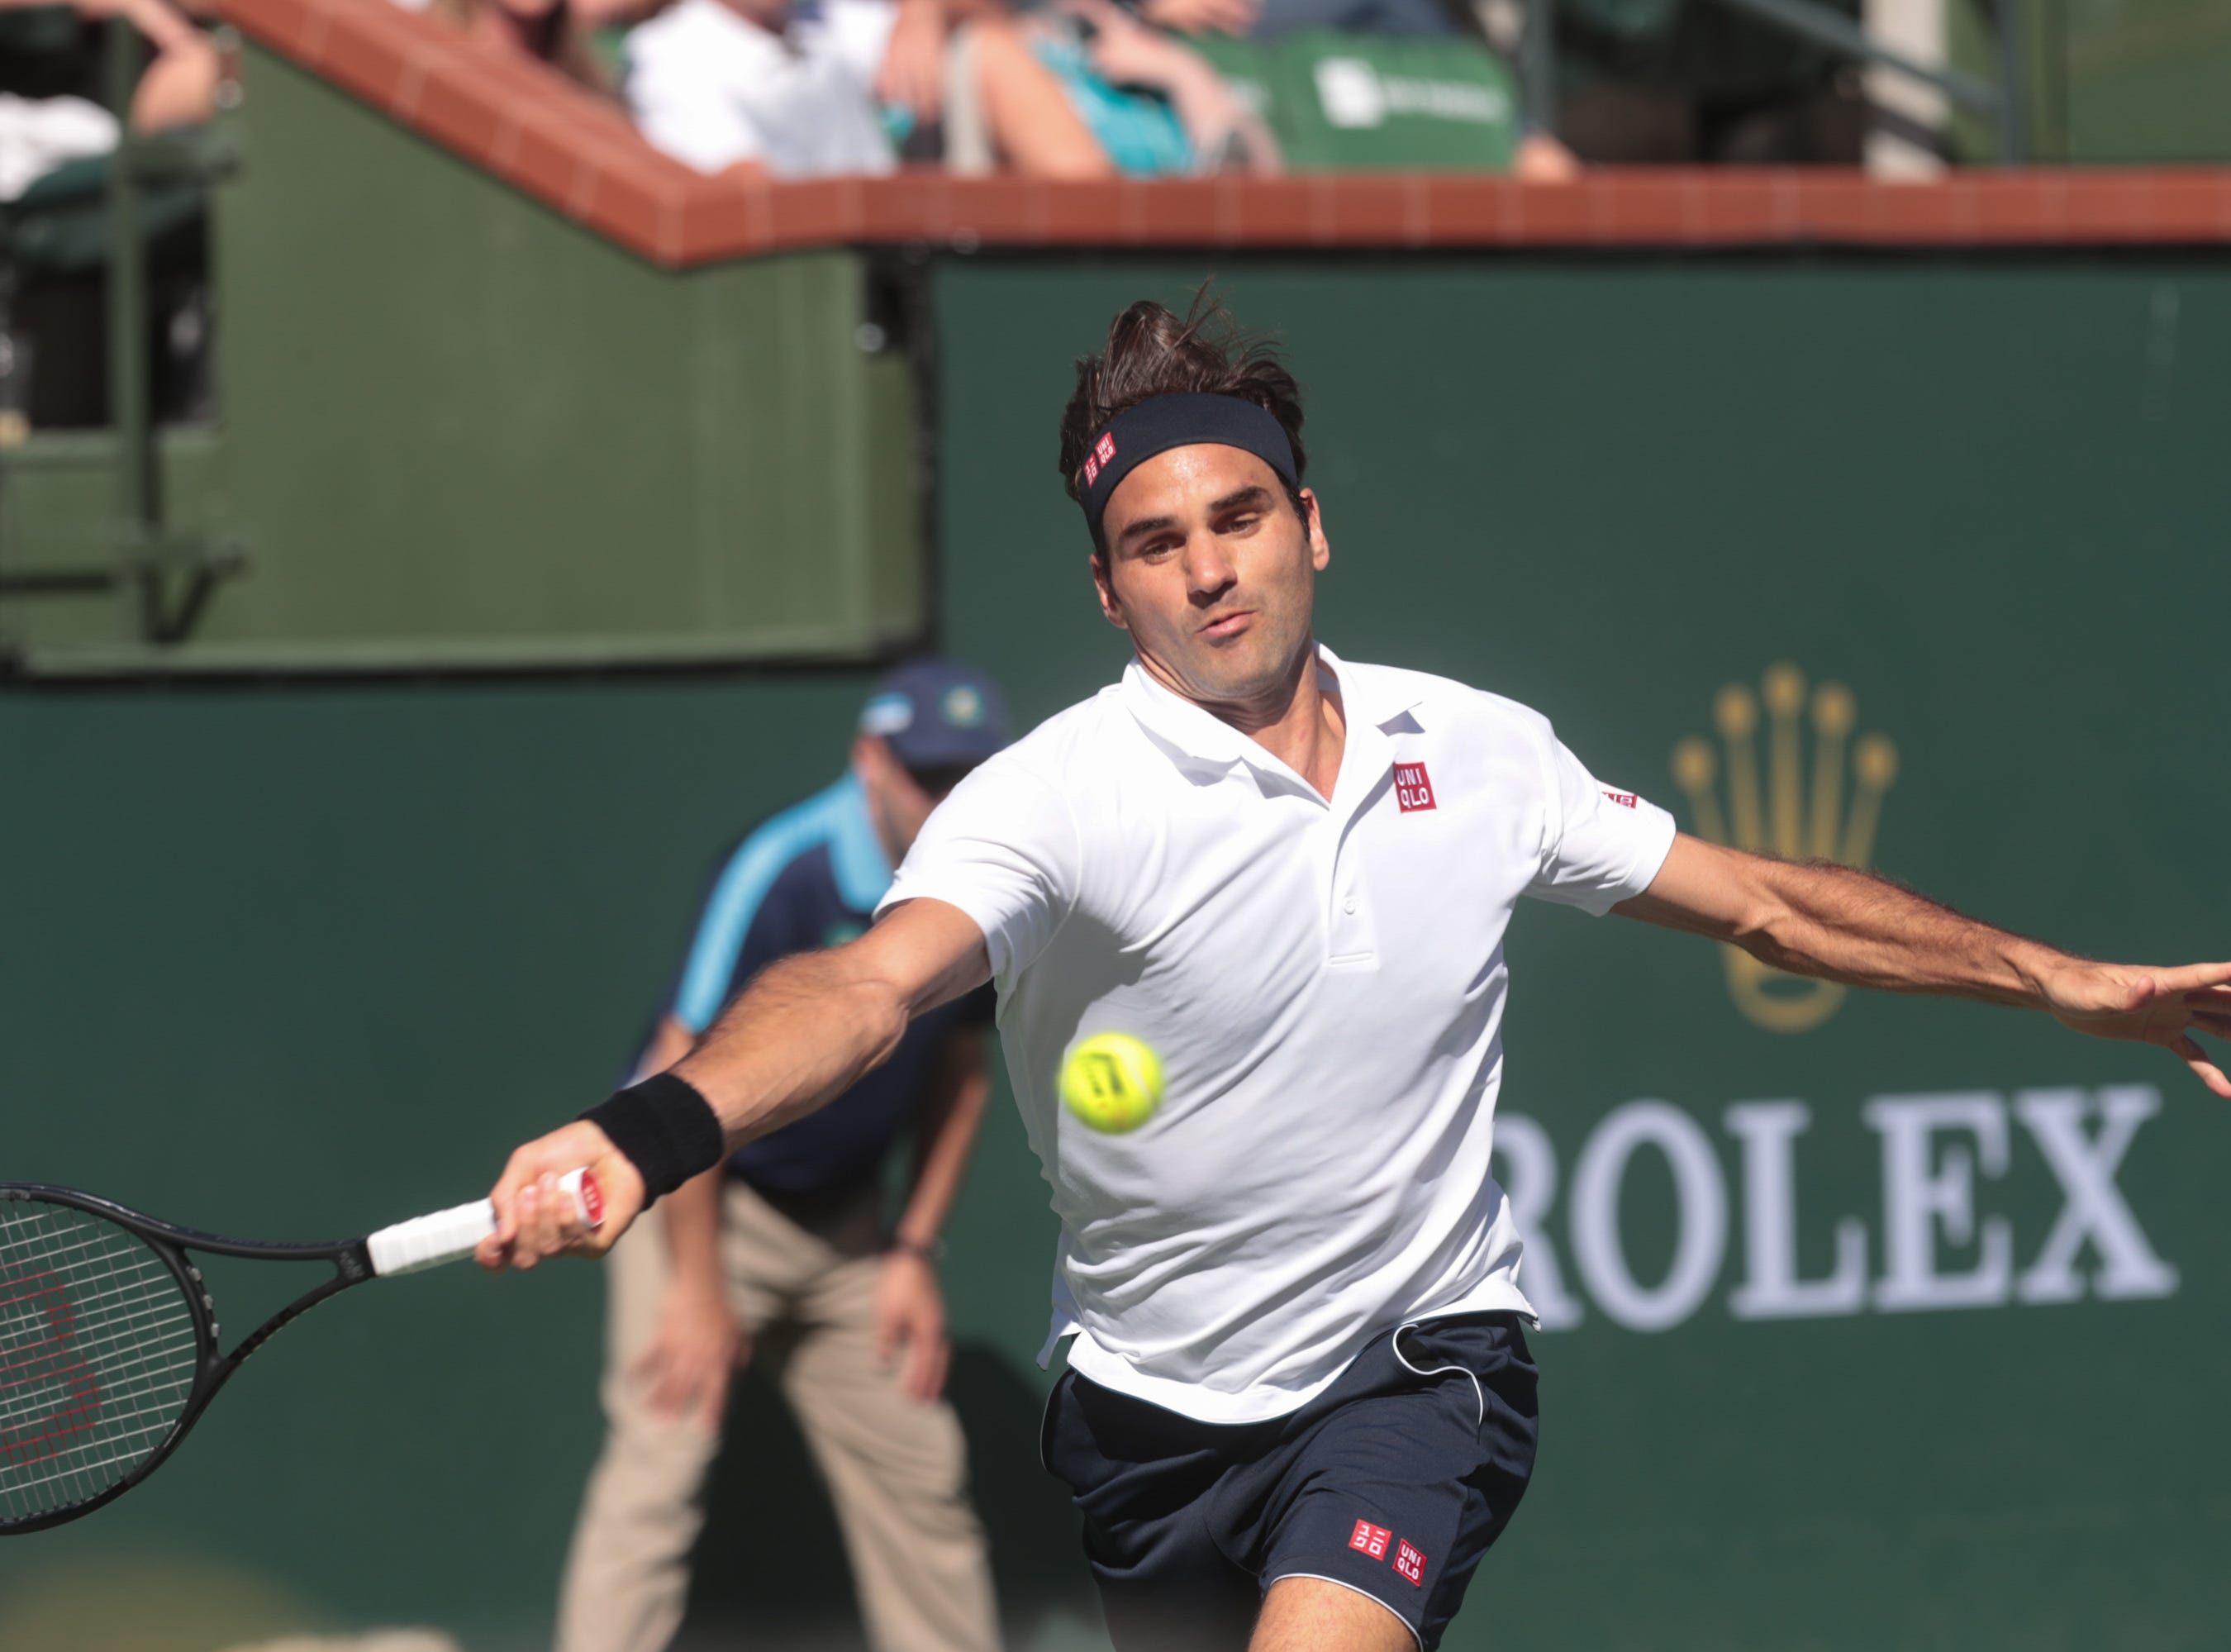 Roger Federer reaches for a shot from Kyle Edmund at the BNP Paribas Open in Indian Wells, Calif., March 13, 2019.